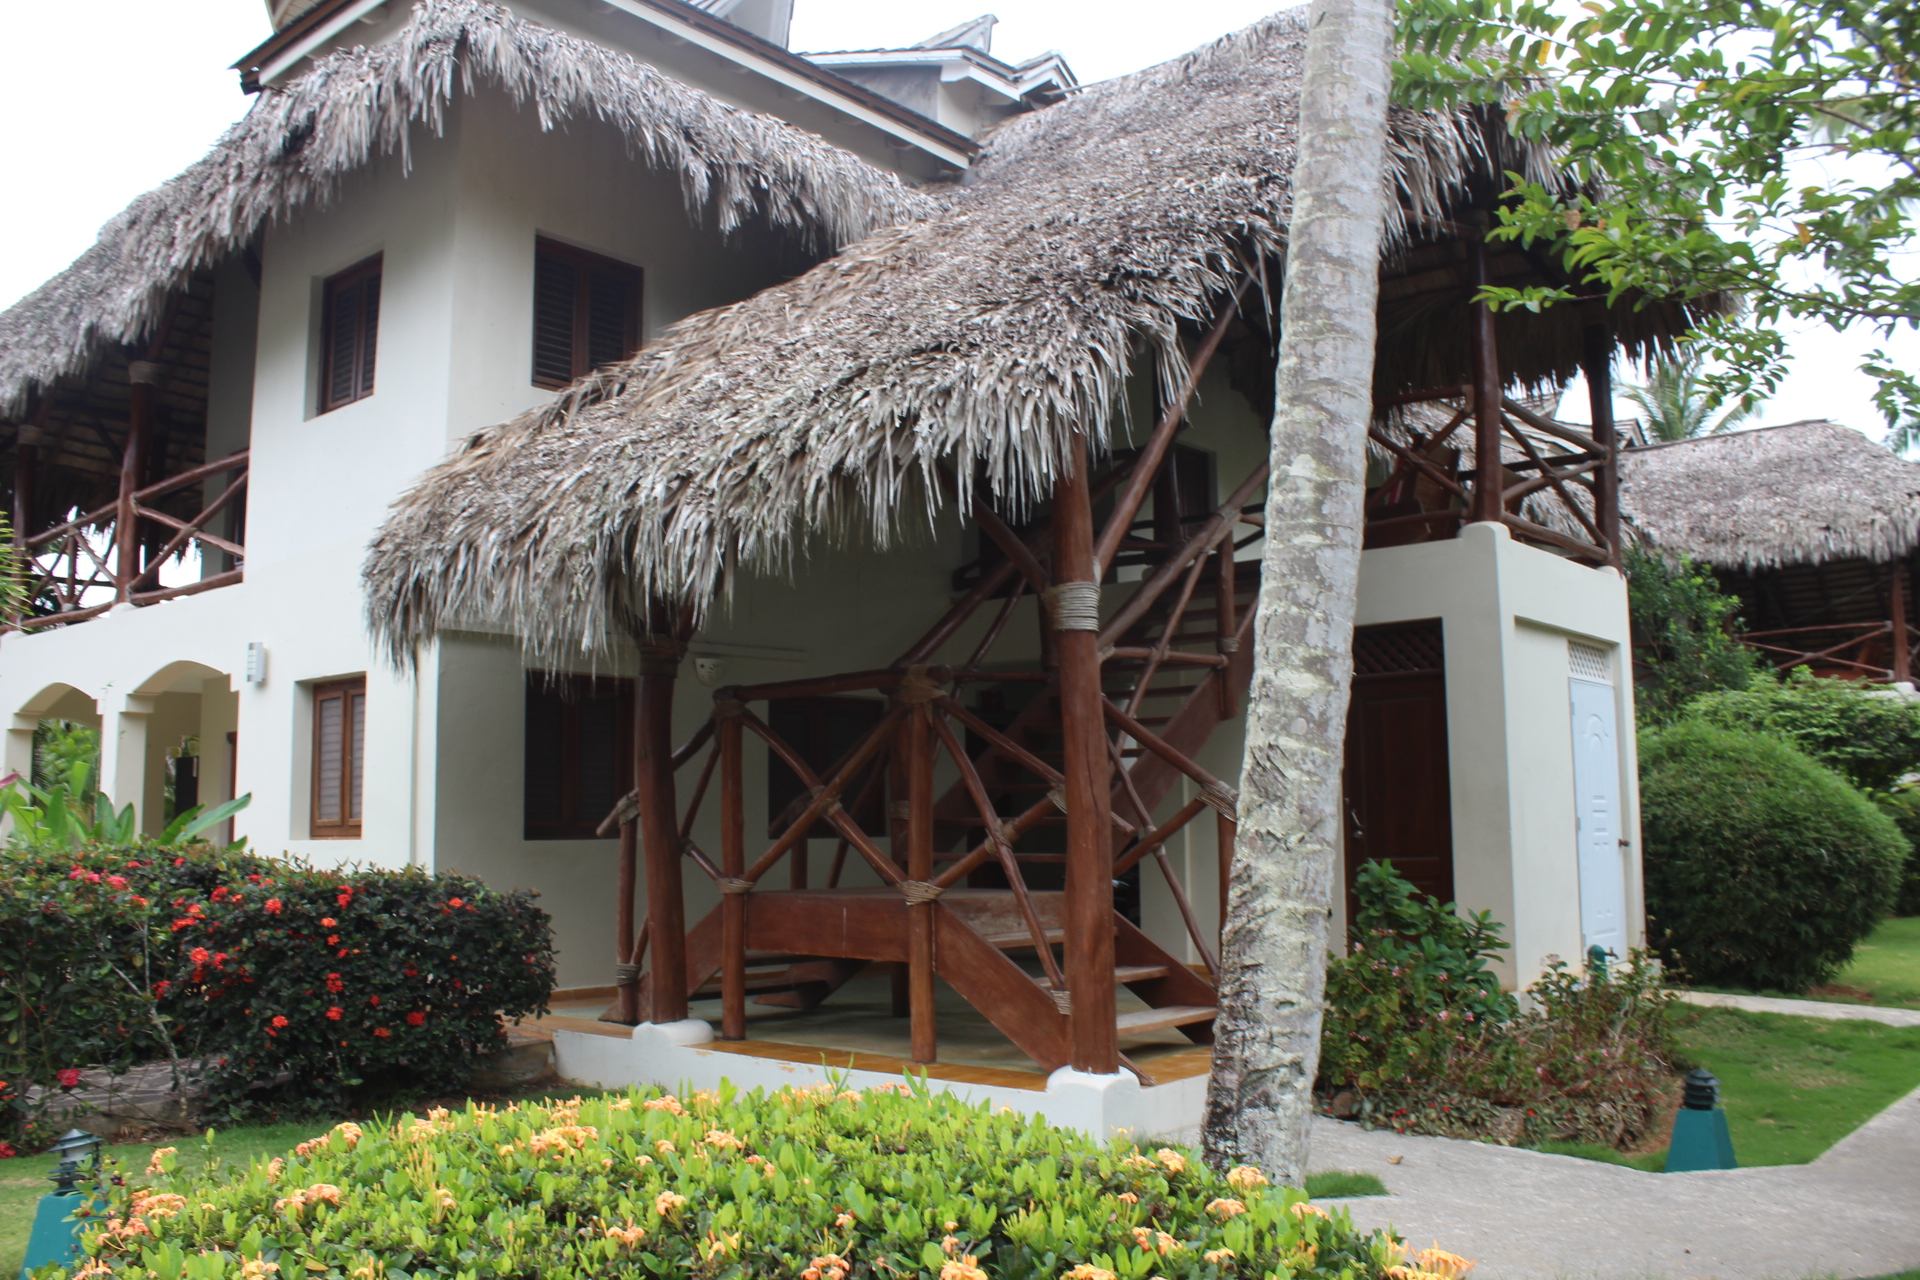 For-sale-Apartment-in-beachfront-community-with-mezzanine-Las-Terrenas_4780.JPG